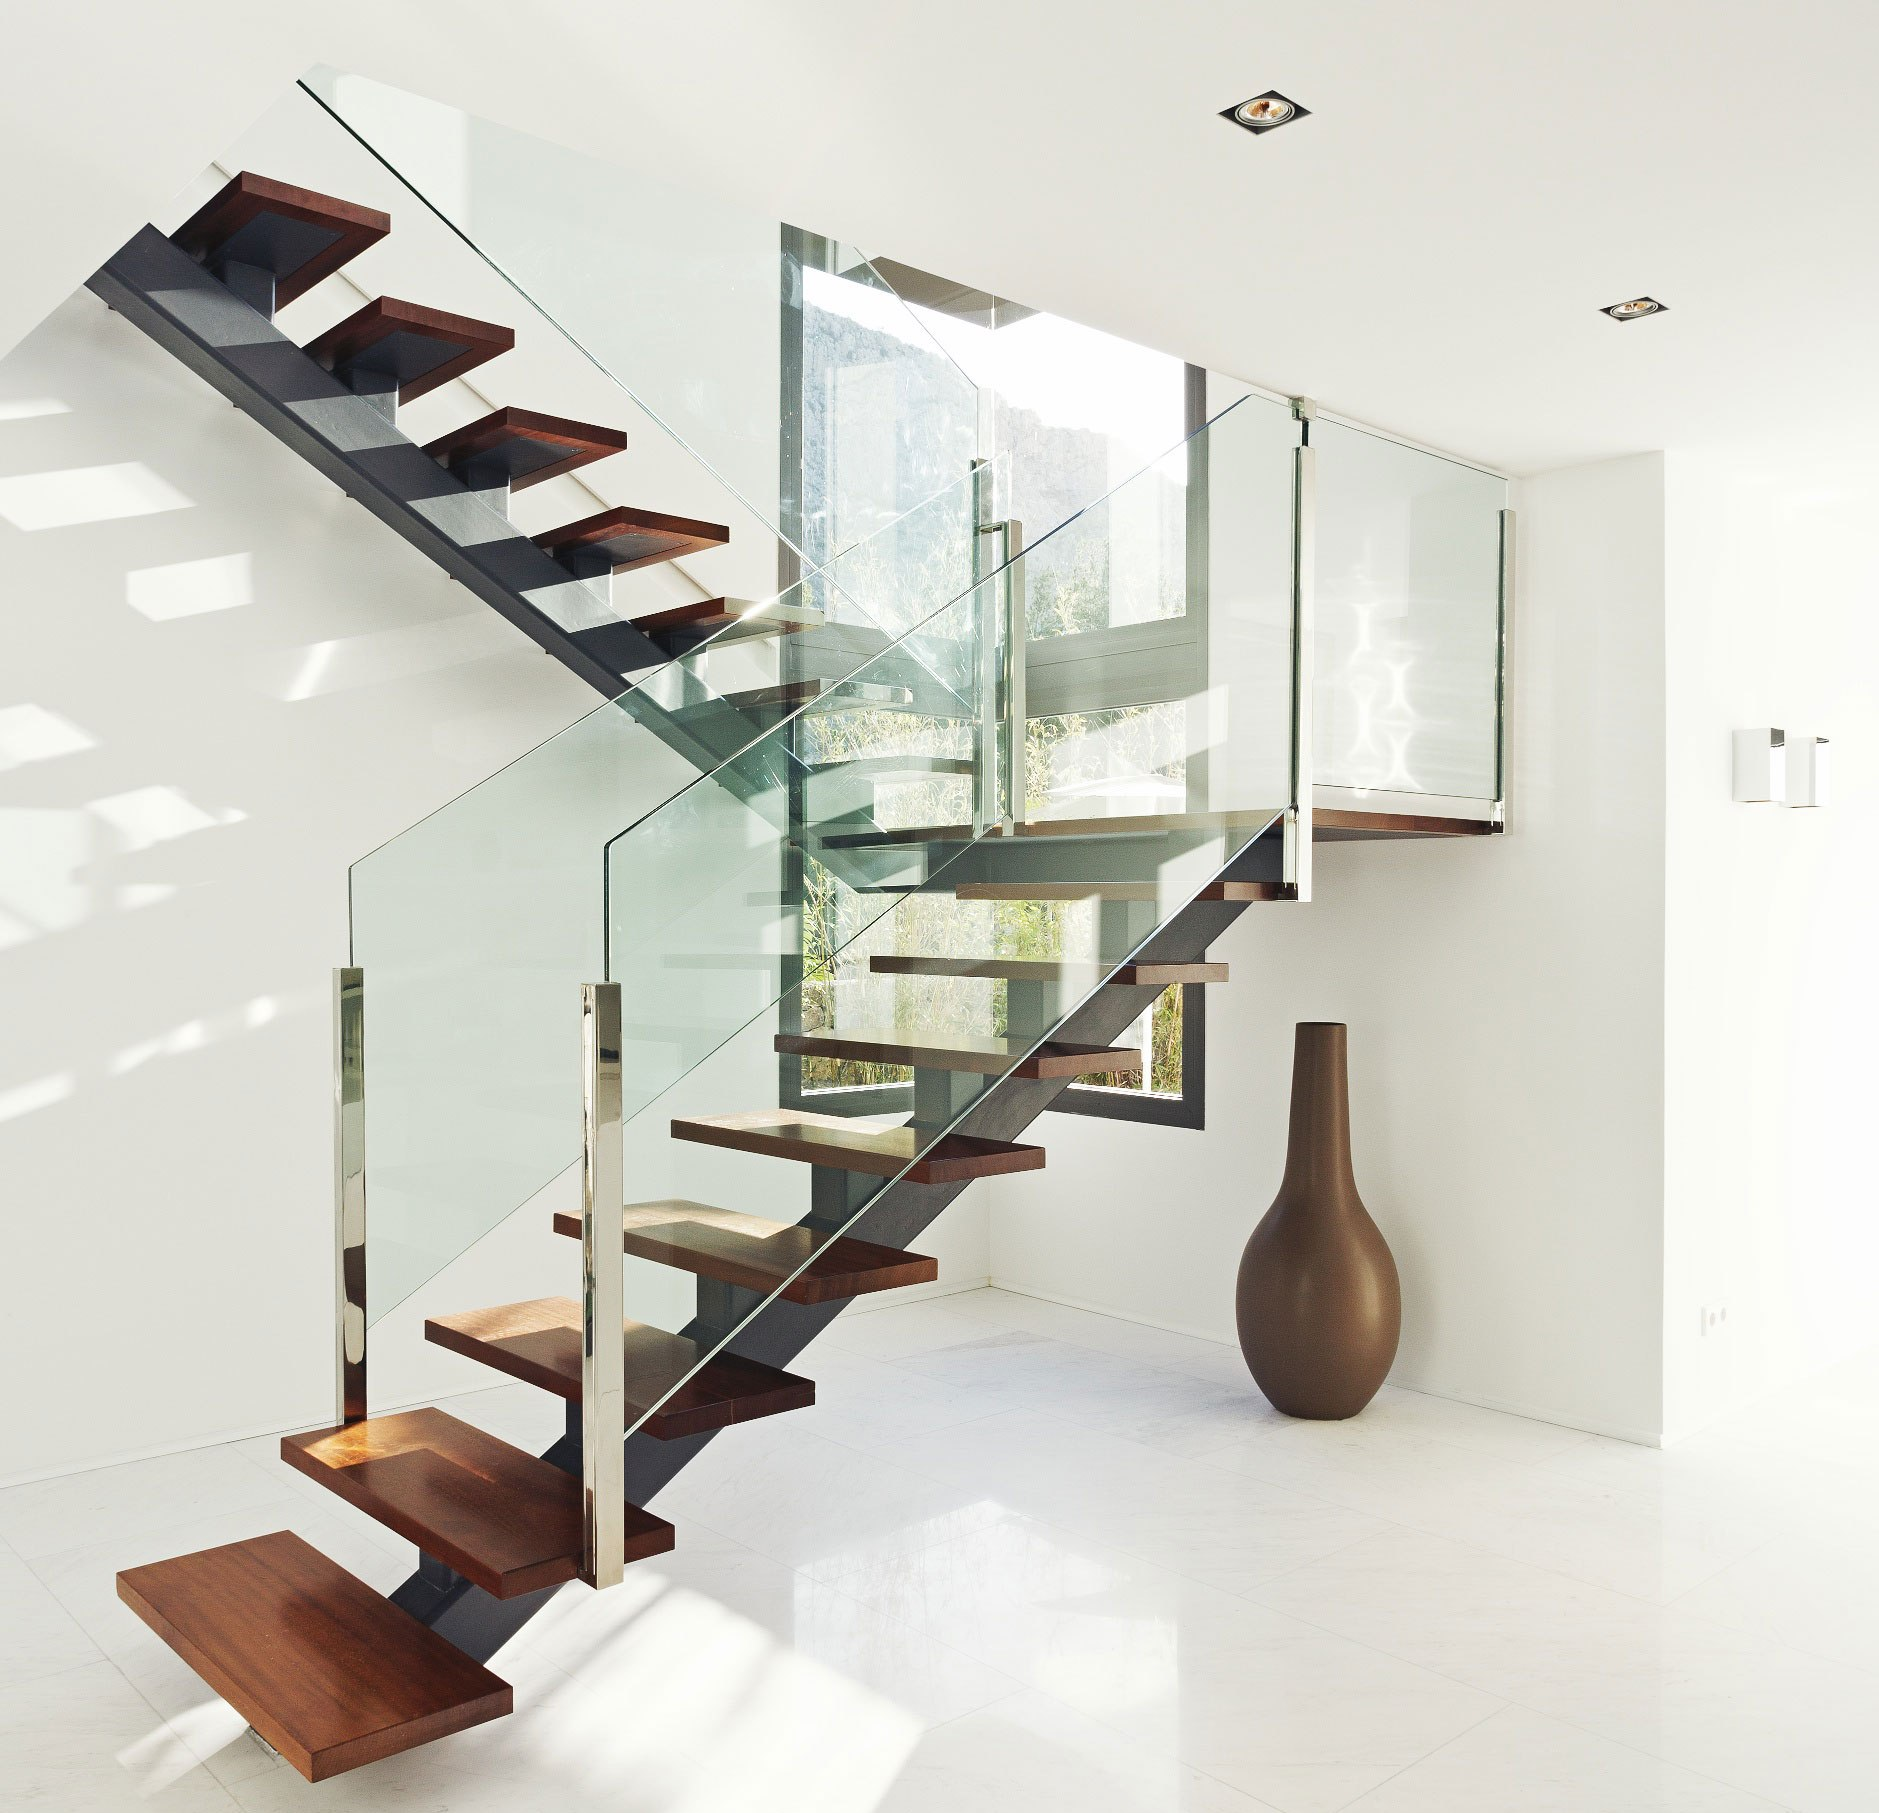 Colorful Staircase Designs 30 Ideas To Consider For A: 21 Beautiful Modern Glass Staircase Design